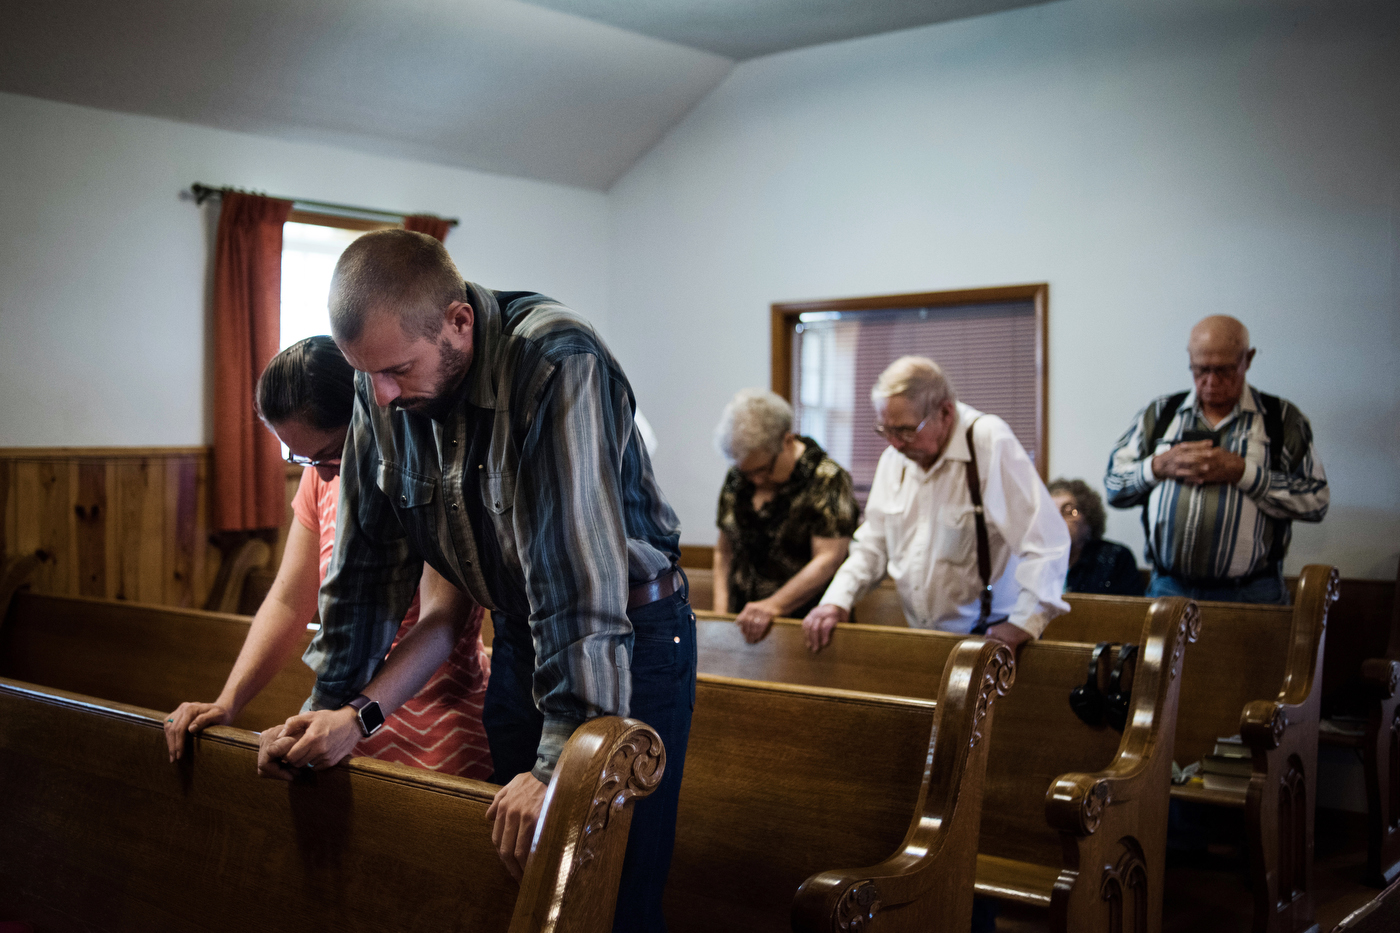 """45°26'49.9""""N 102°10'07.6""""W. 127 miles from the nearest McDonald's.  Parishioners pray while worshiping at Coal Springs church in Meadow, SD. While many old prairie churches have closed over the years, many other small congregations still struggle to survive, or have multi-point parishes with one pastor serving a large area."""